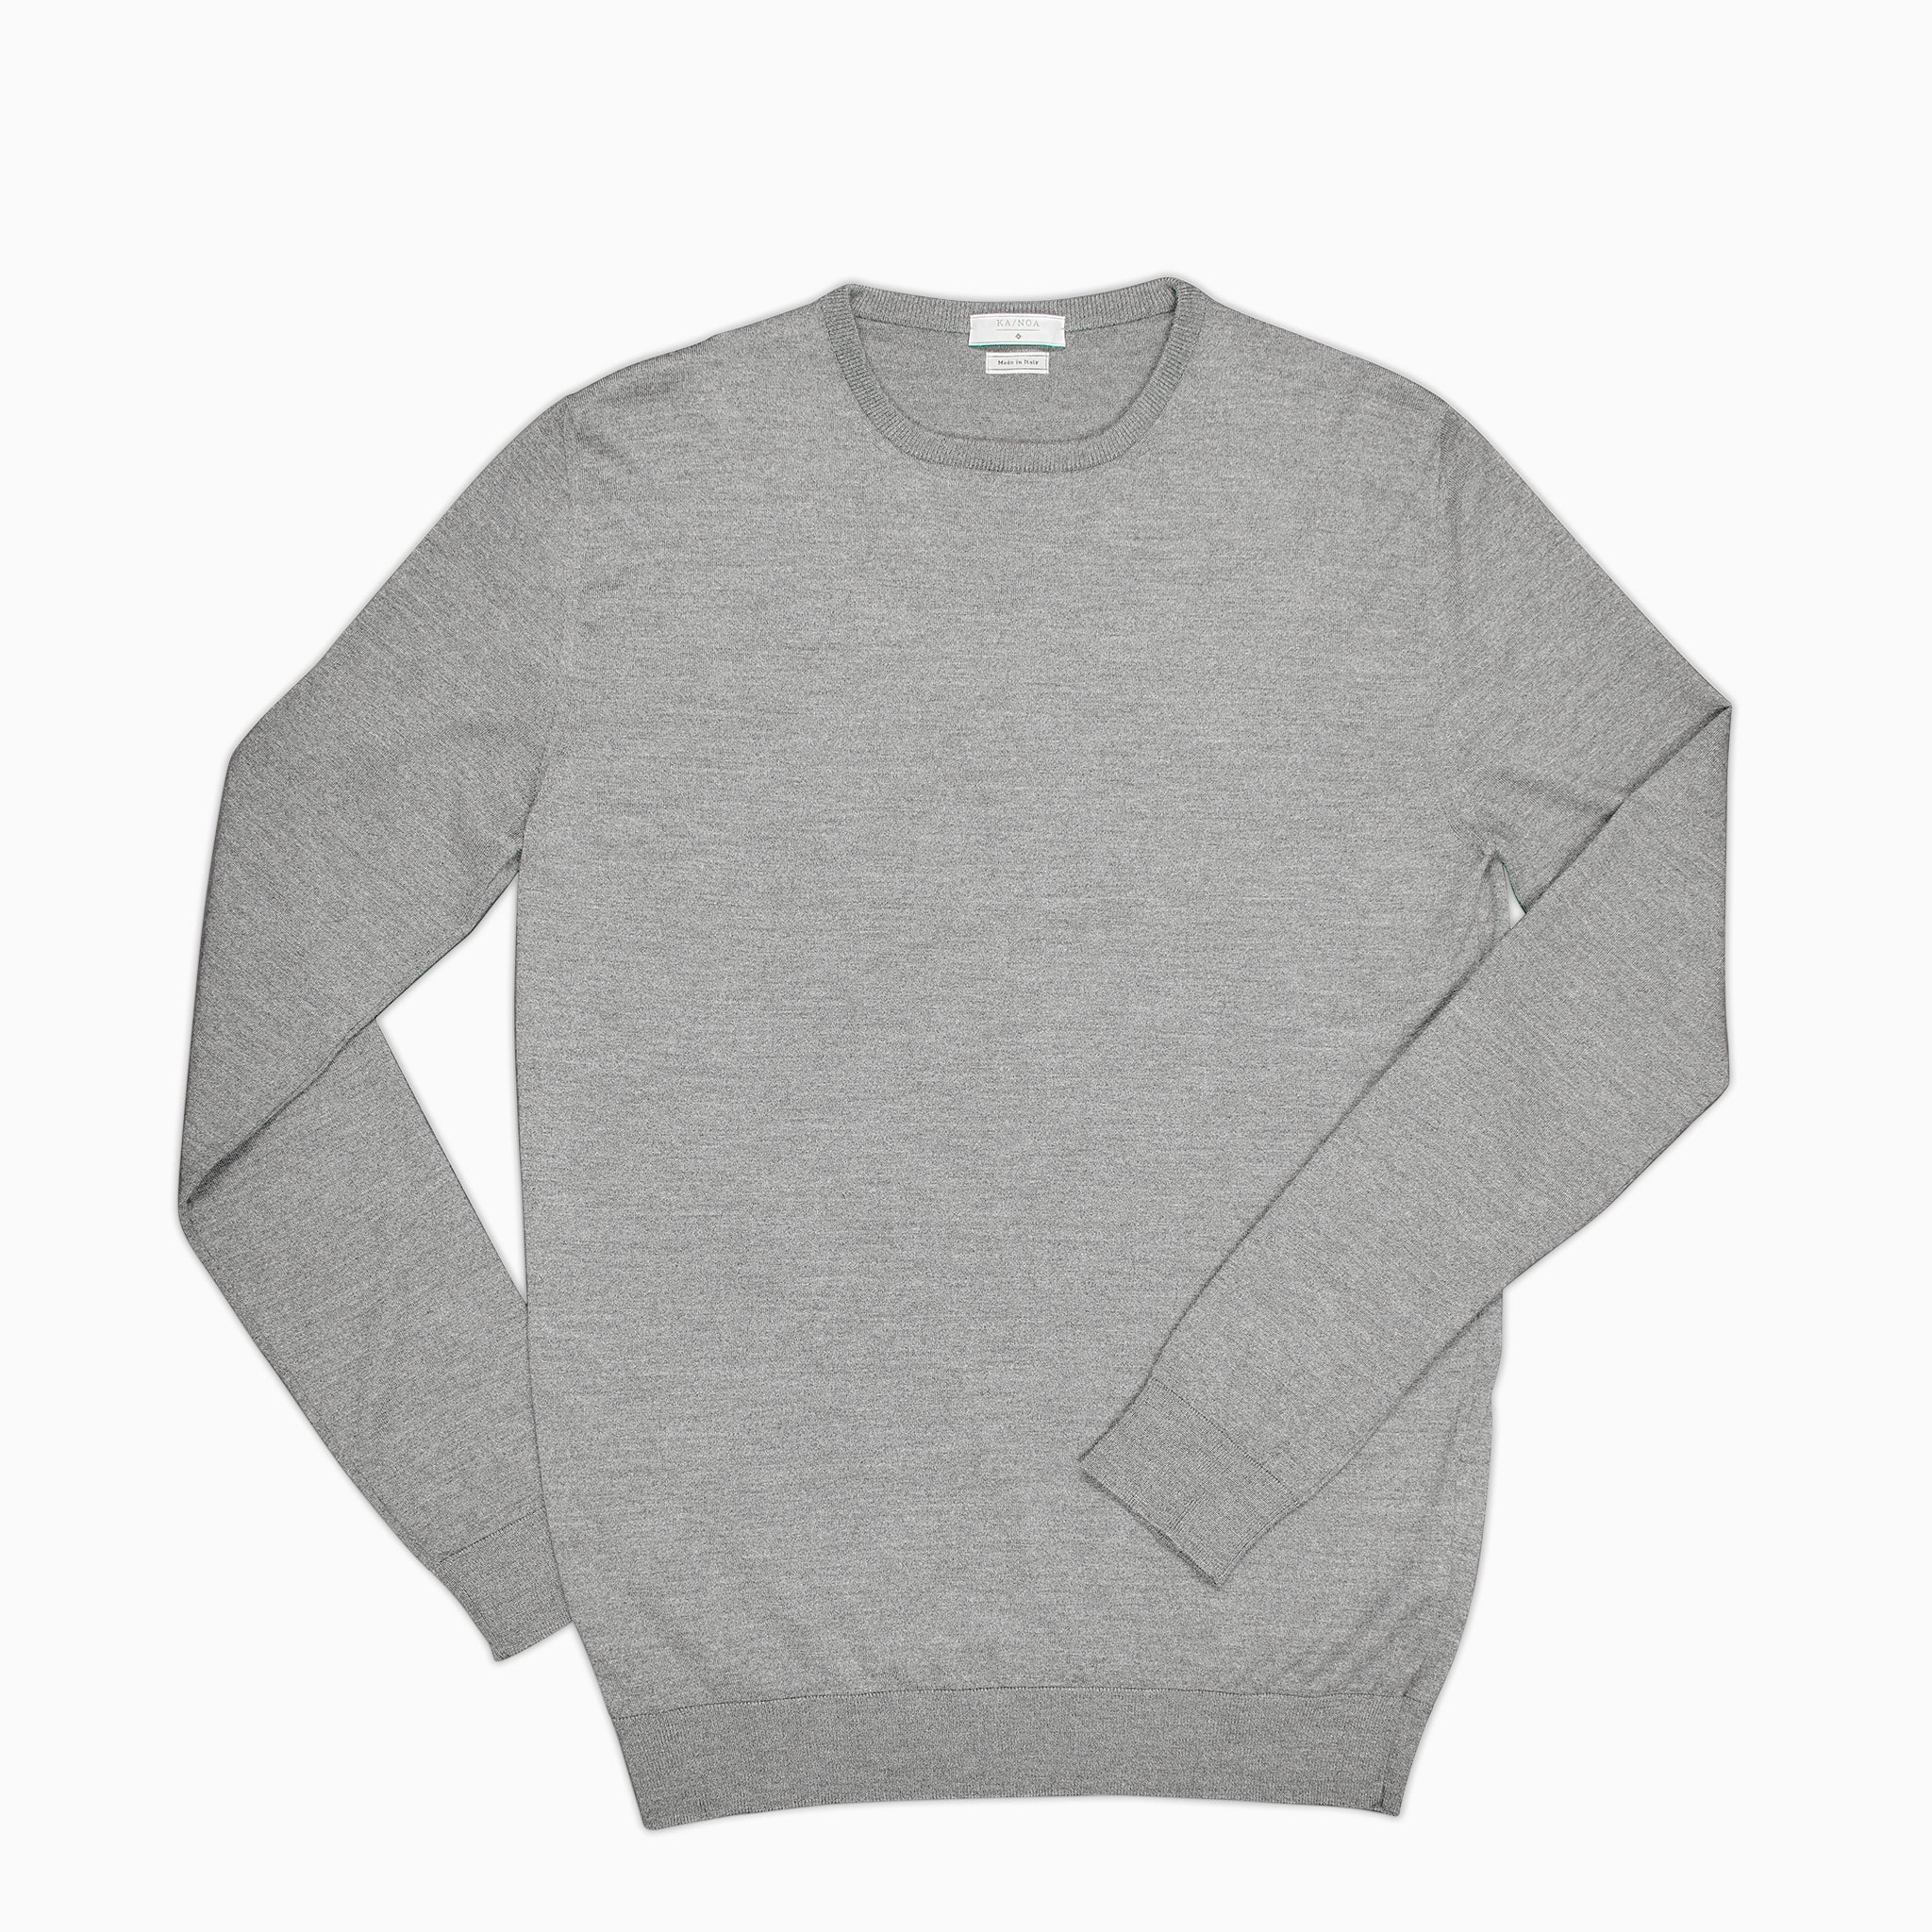 Anaclet crew-neck jumper (cashmere / charcoal)